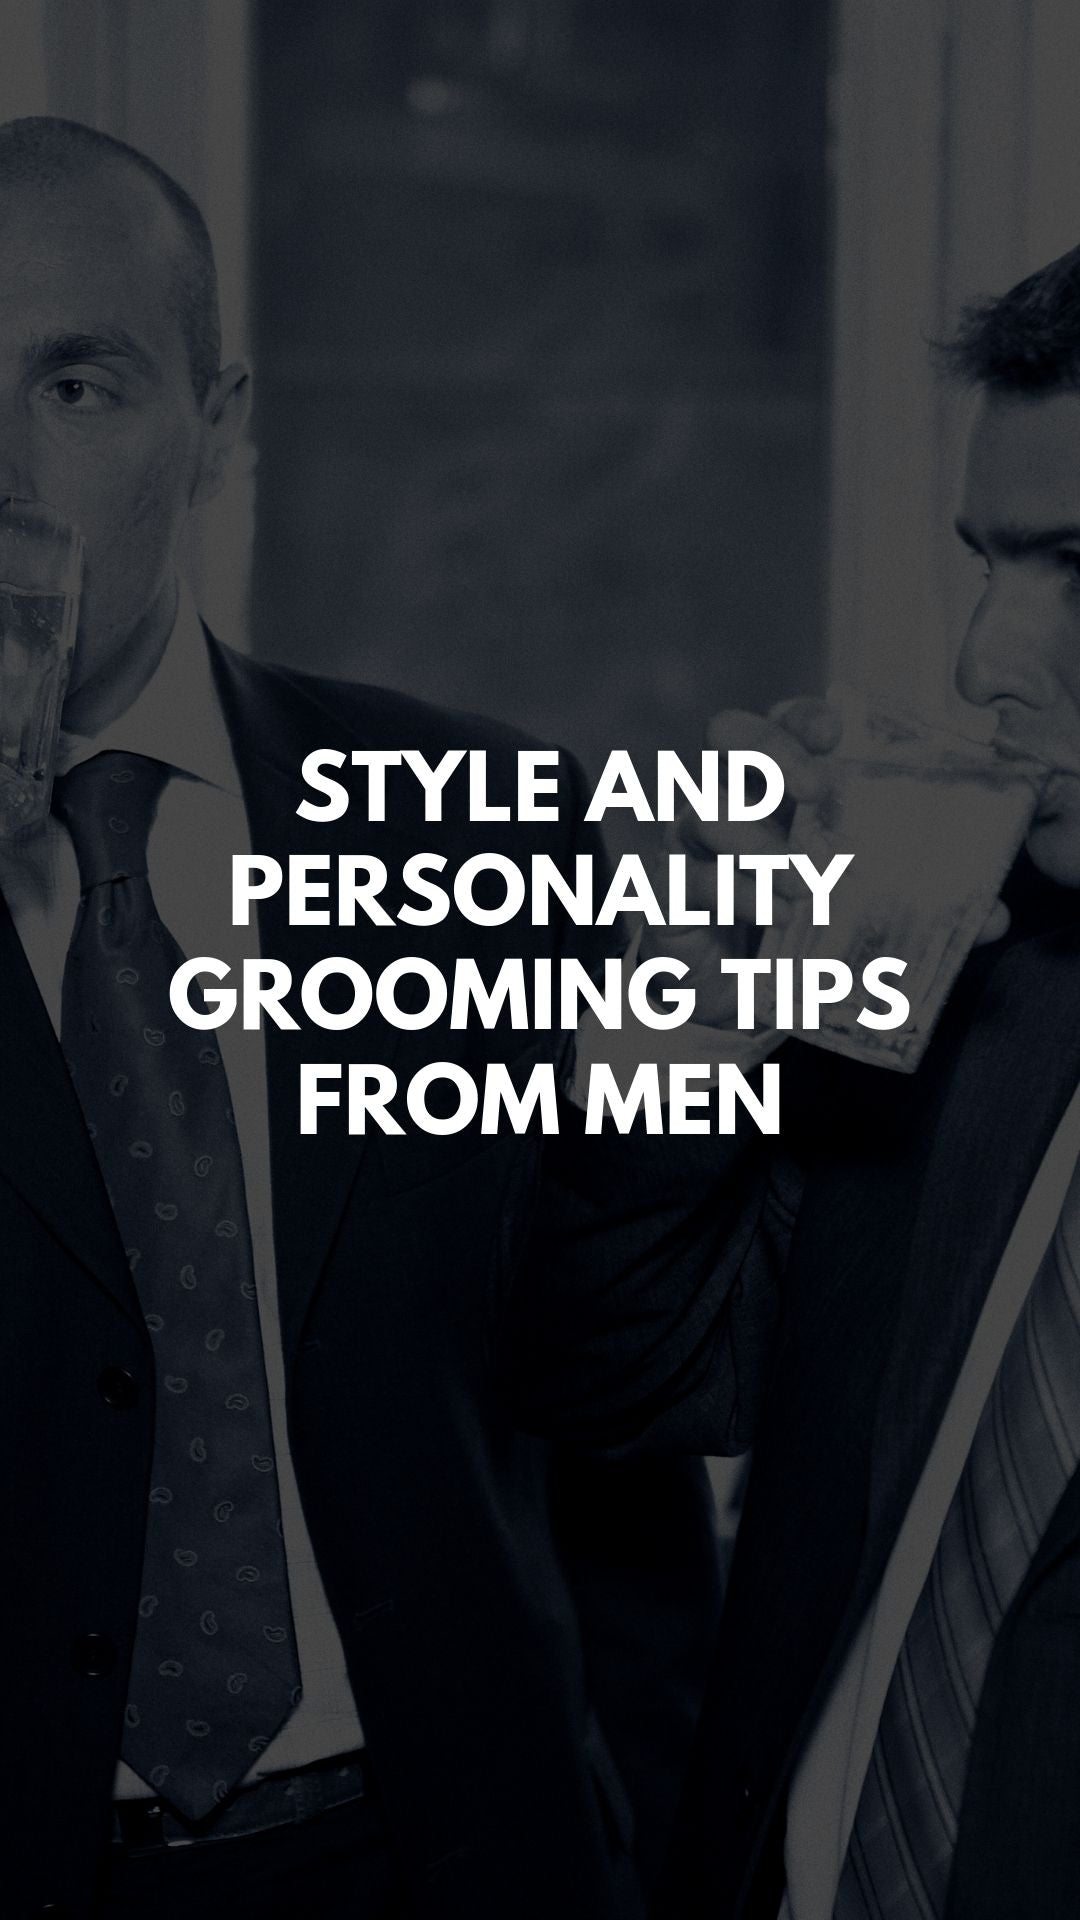 Style And Personality Grooming Tips From Men